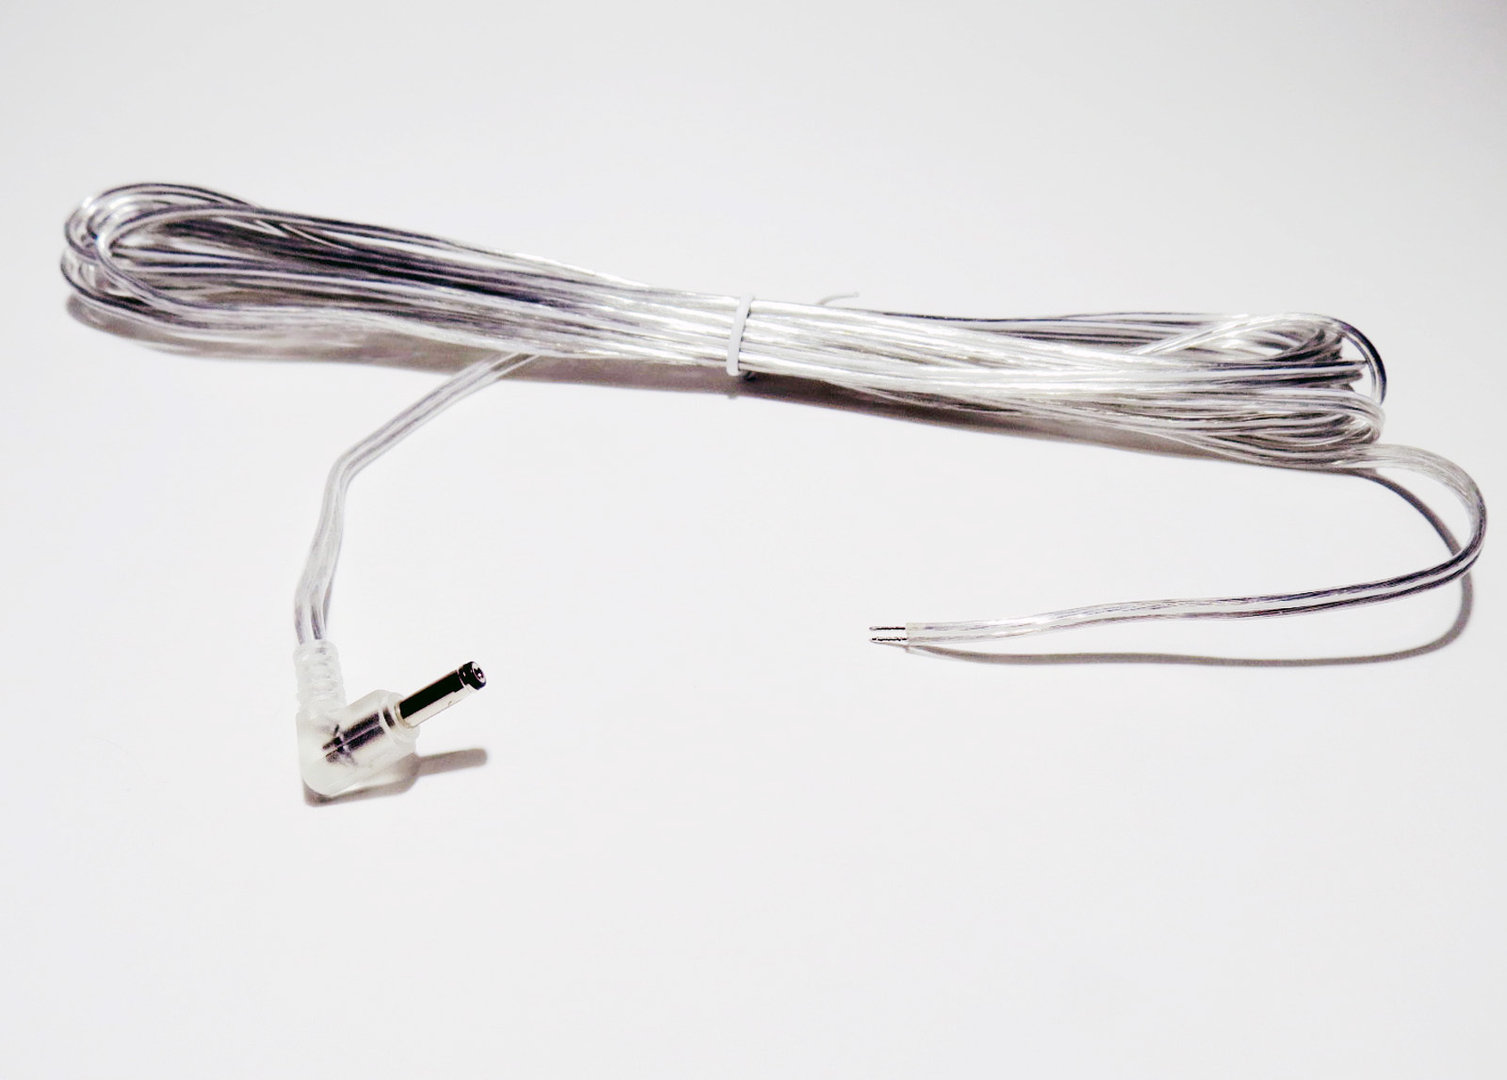 hight resolution of connection cable 400 cm hollow plug 3 5x1 35mm 90 angled